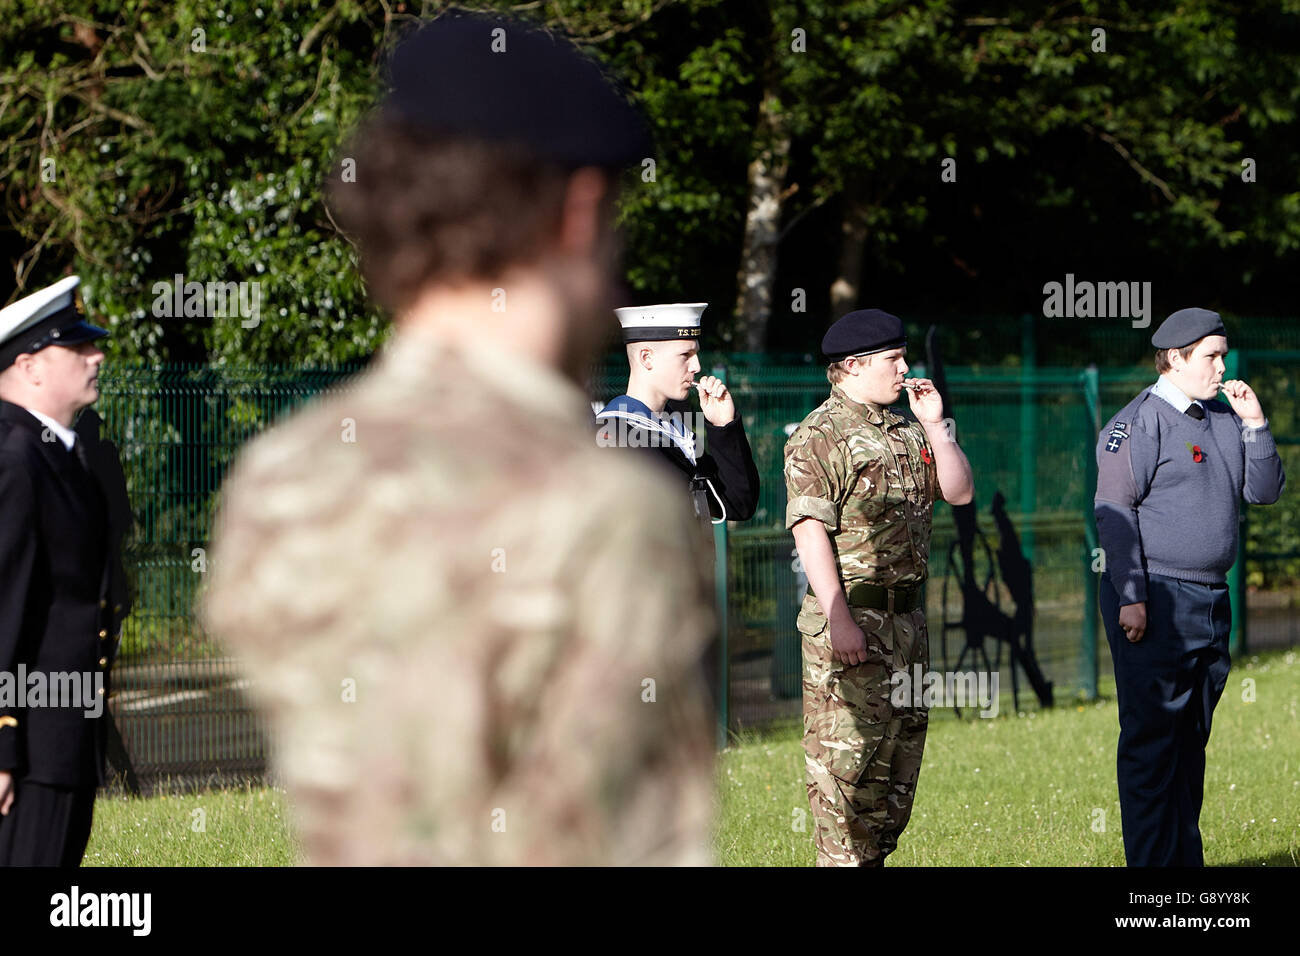 Newtownards, County Down, Northern Ireland. 1st July, 2016. Armed forces cadets blow whistles to signify the start Stock Photo